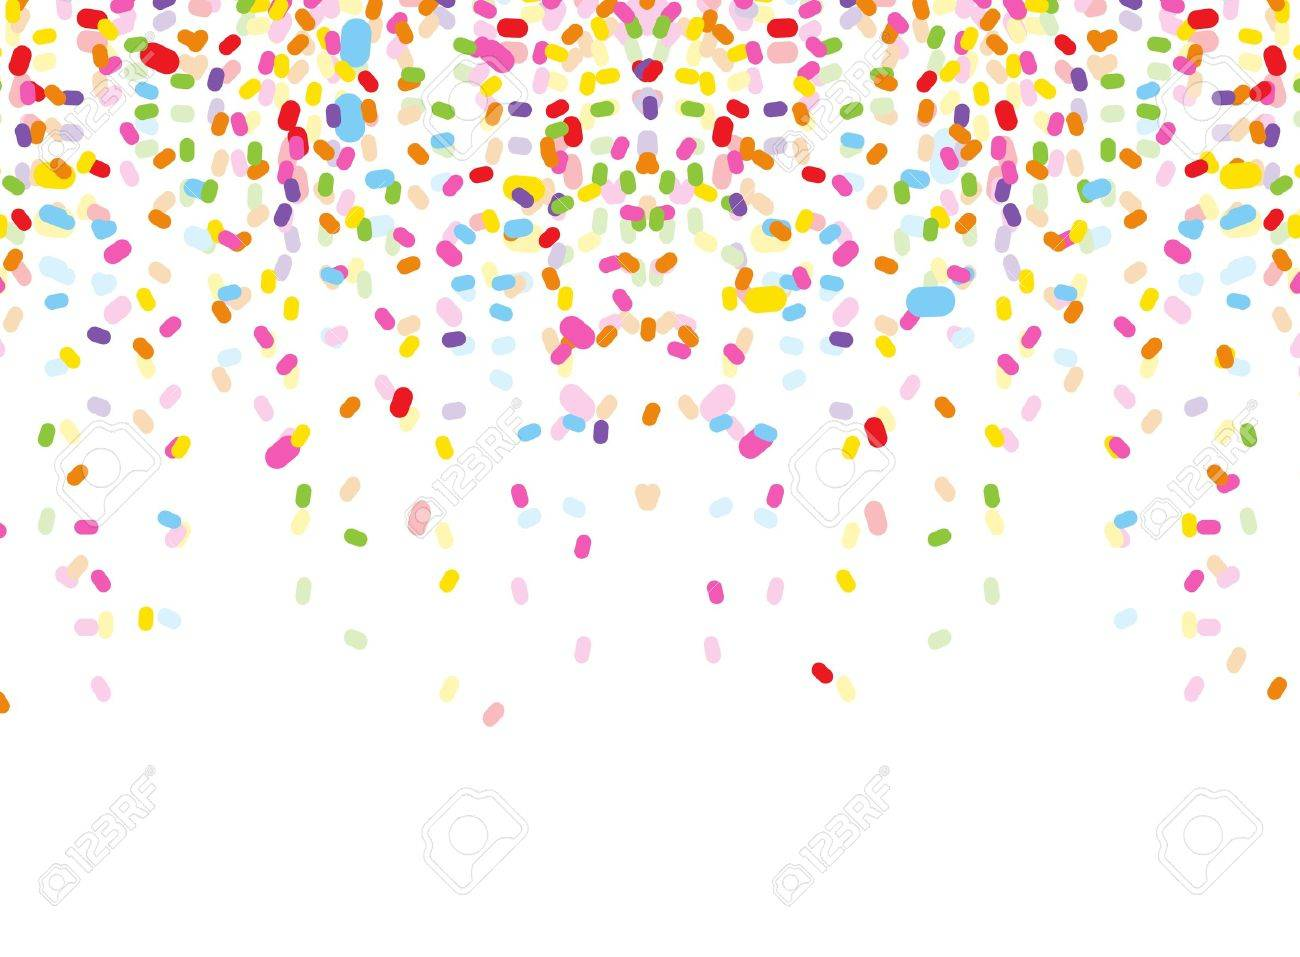 hight resolution of colorful confetti on white background stock vector 38408496